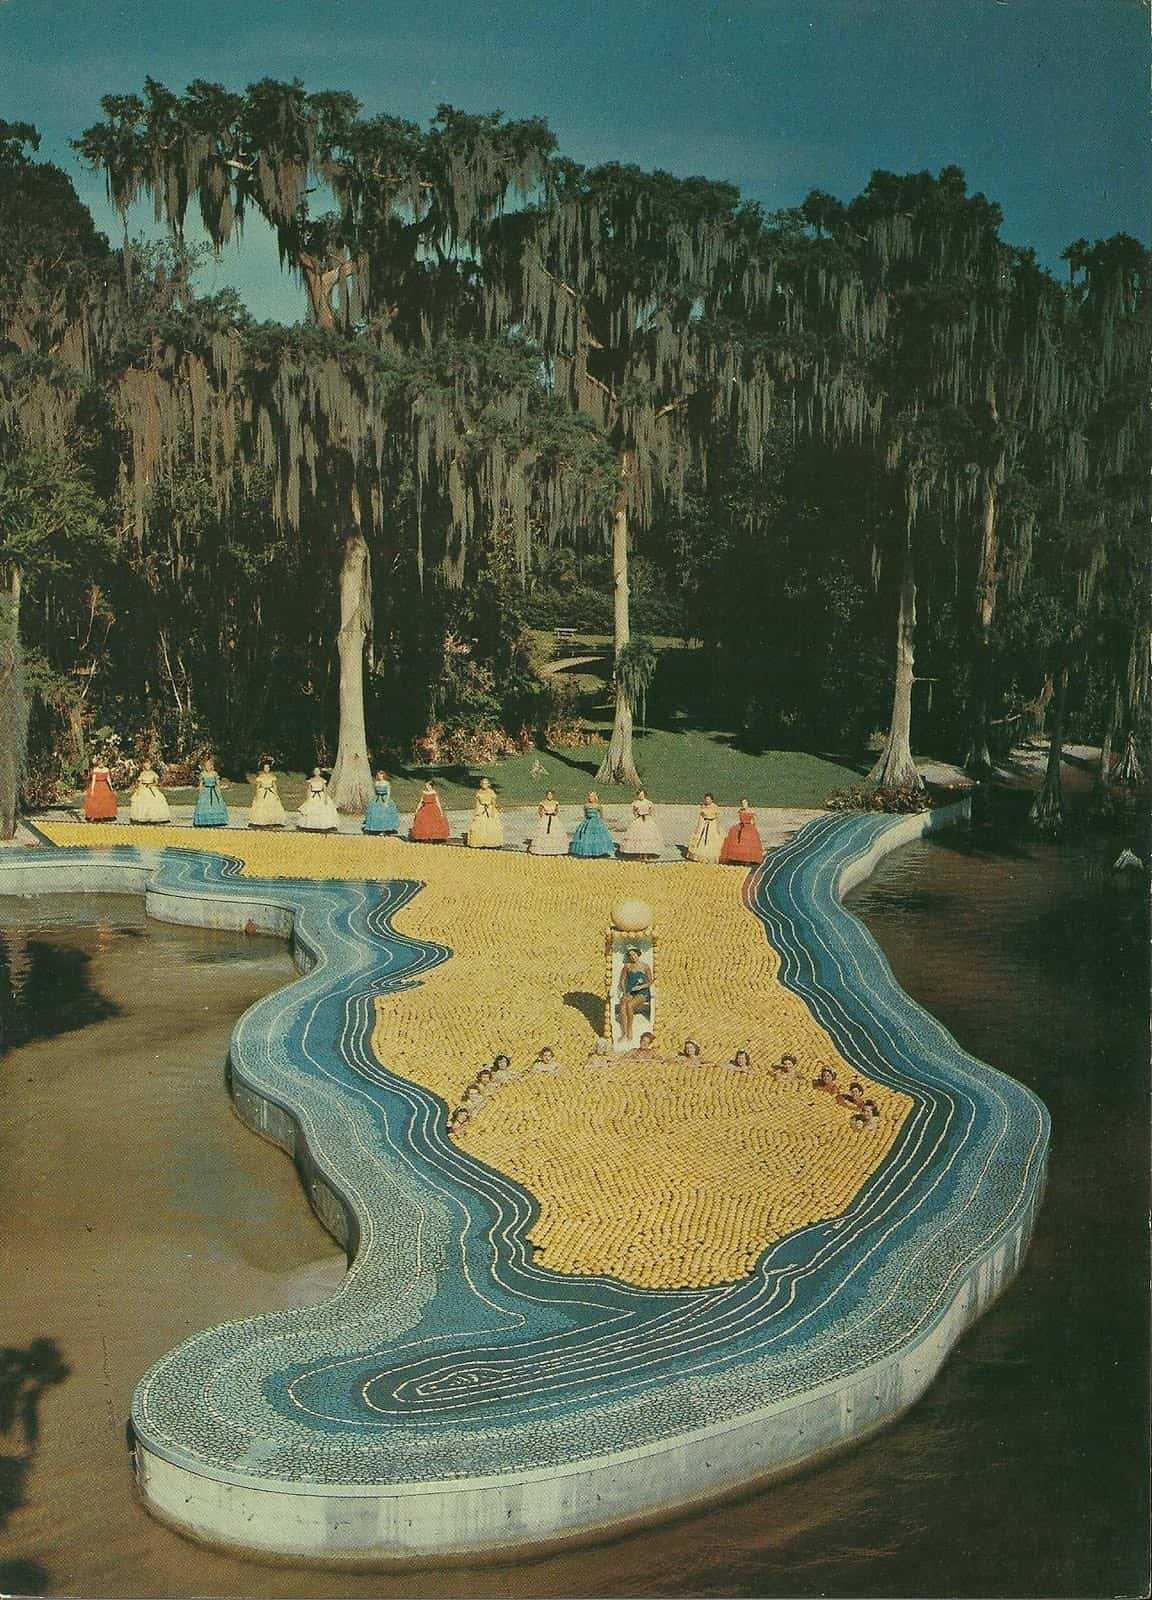 The Florida Pool